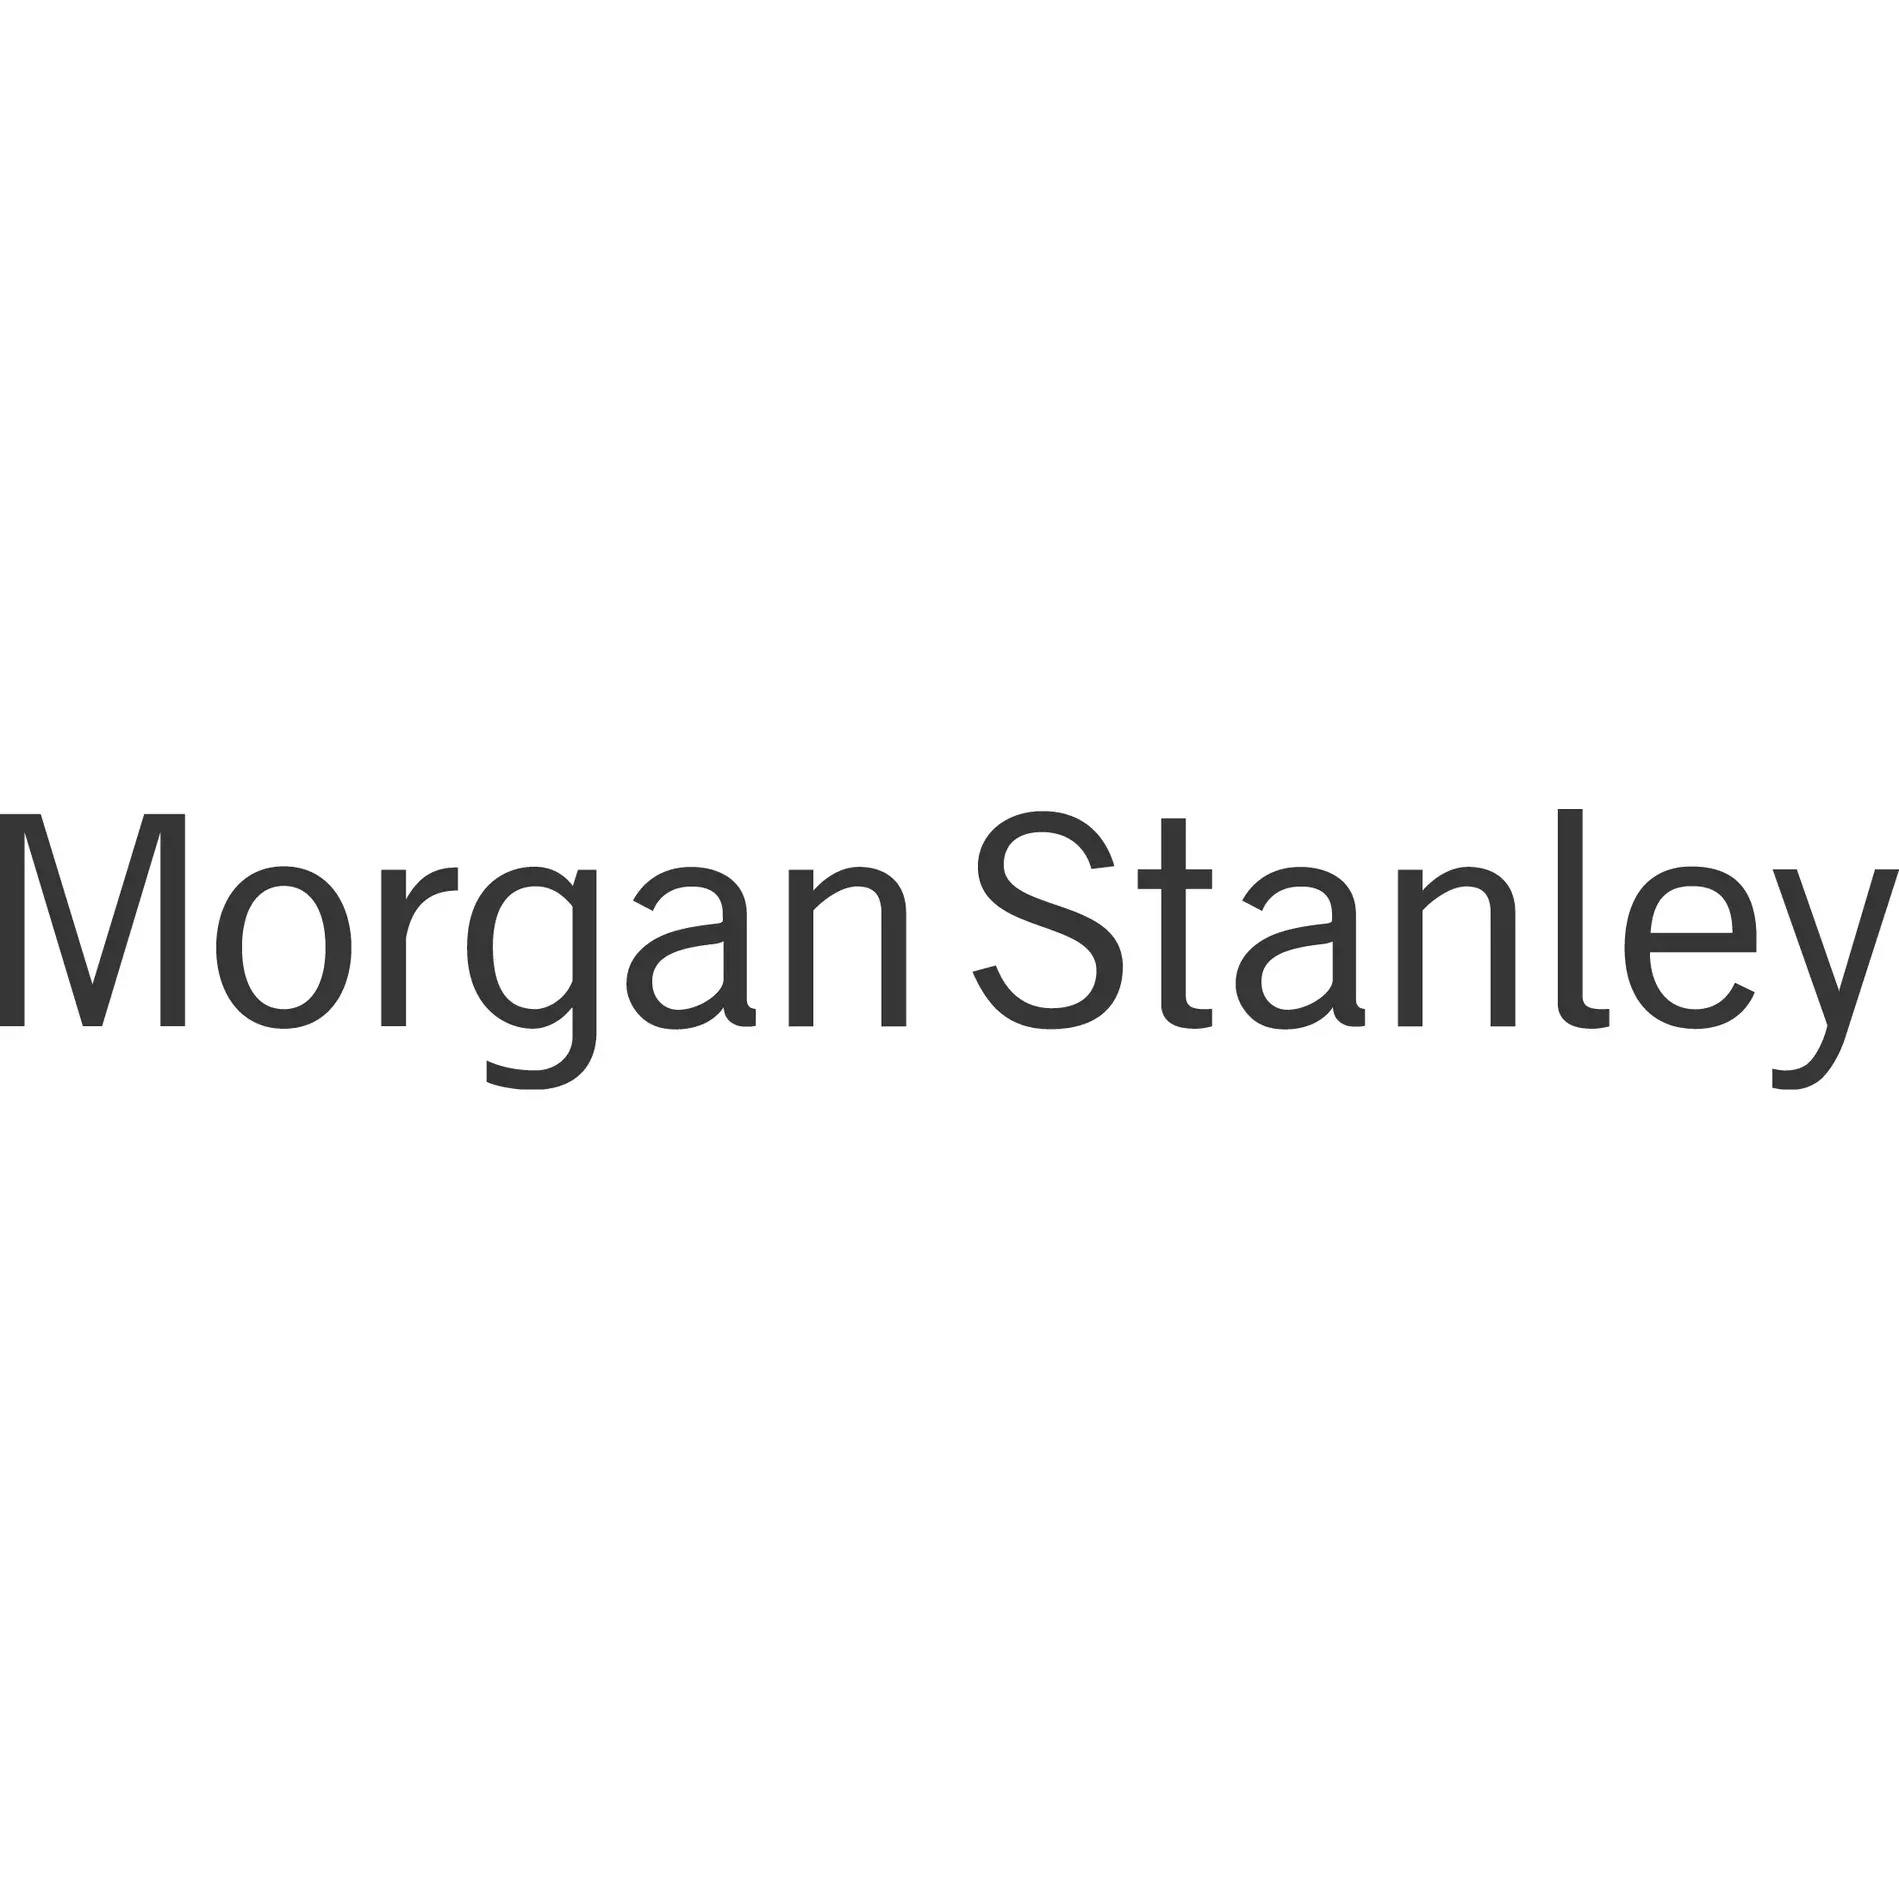 The Bernay and Noone Group - Morgan Stanley | Financial Advisor in Irvine,California